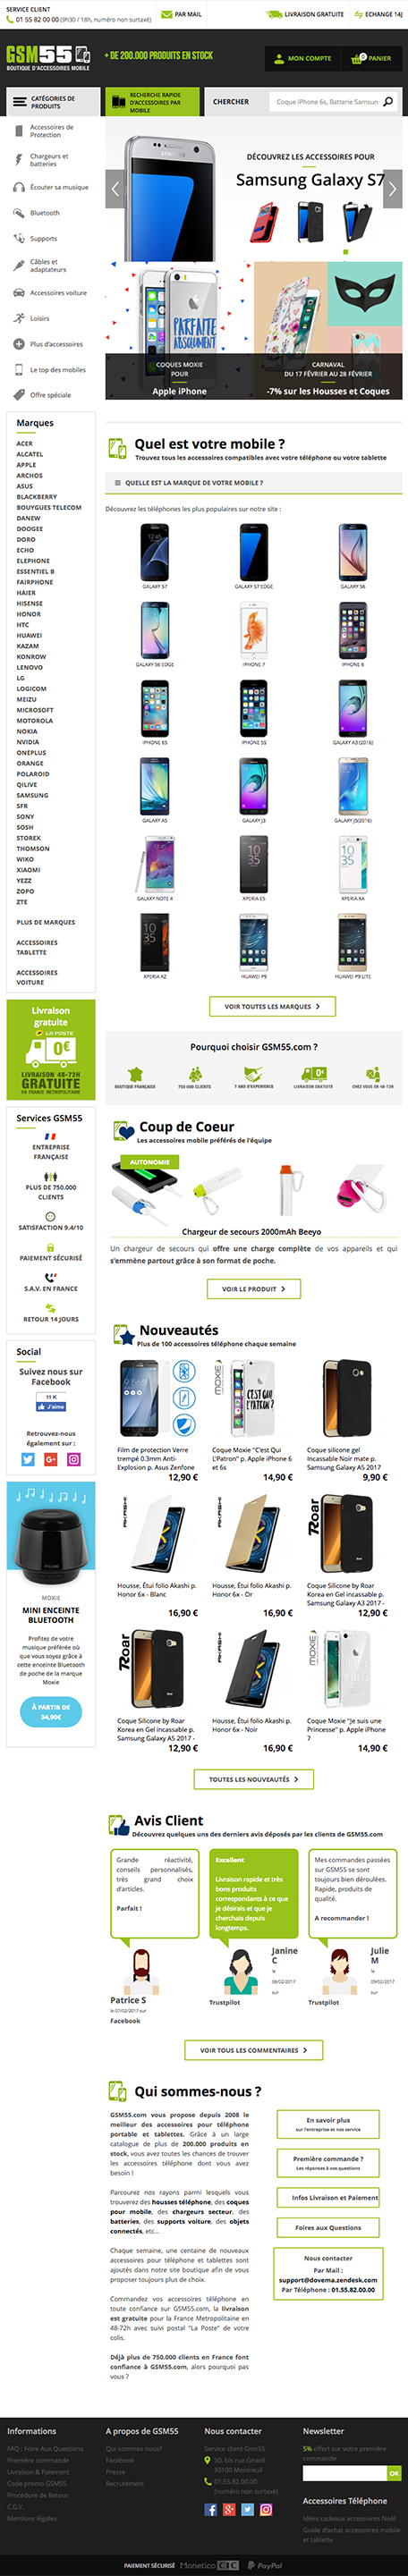 Agence-DND-Creation-Site-ECommerce-GSM55